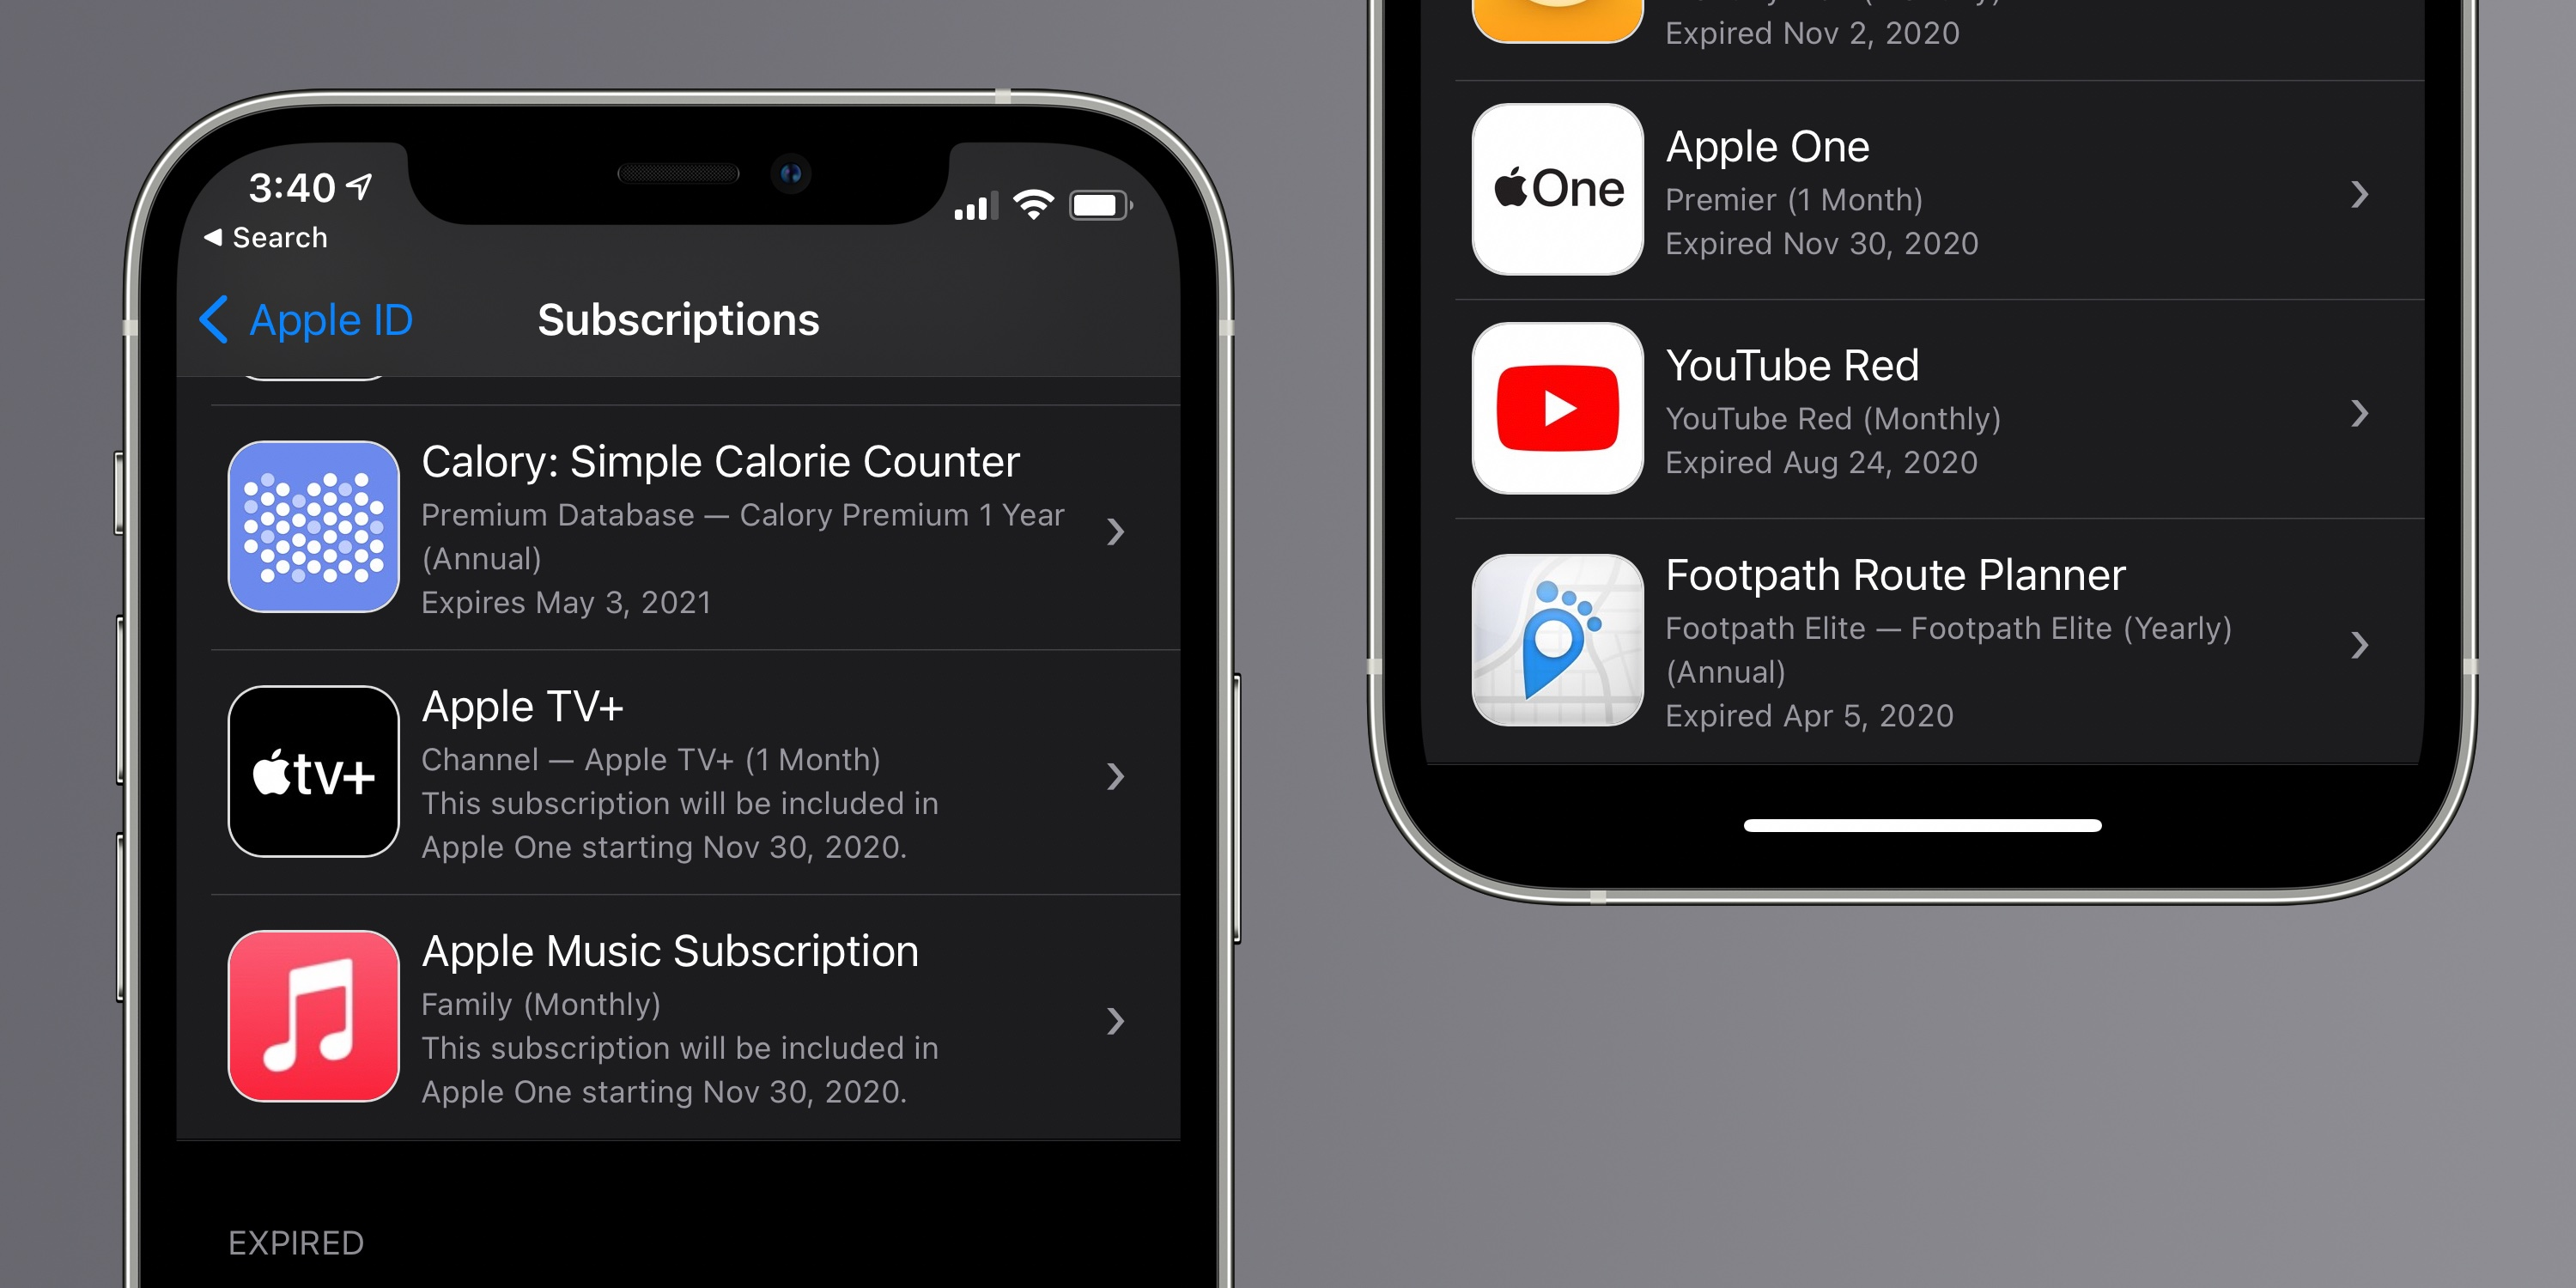 How to view, cancel, and renew subscriptions on iPhone and iPad